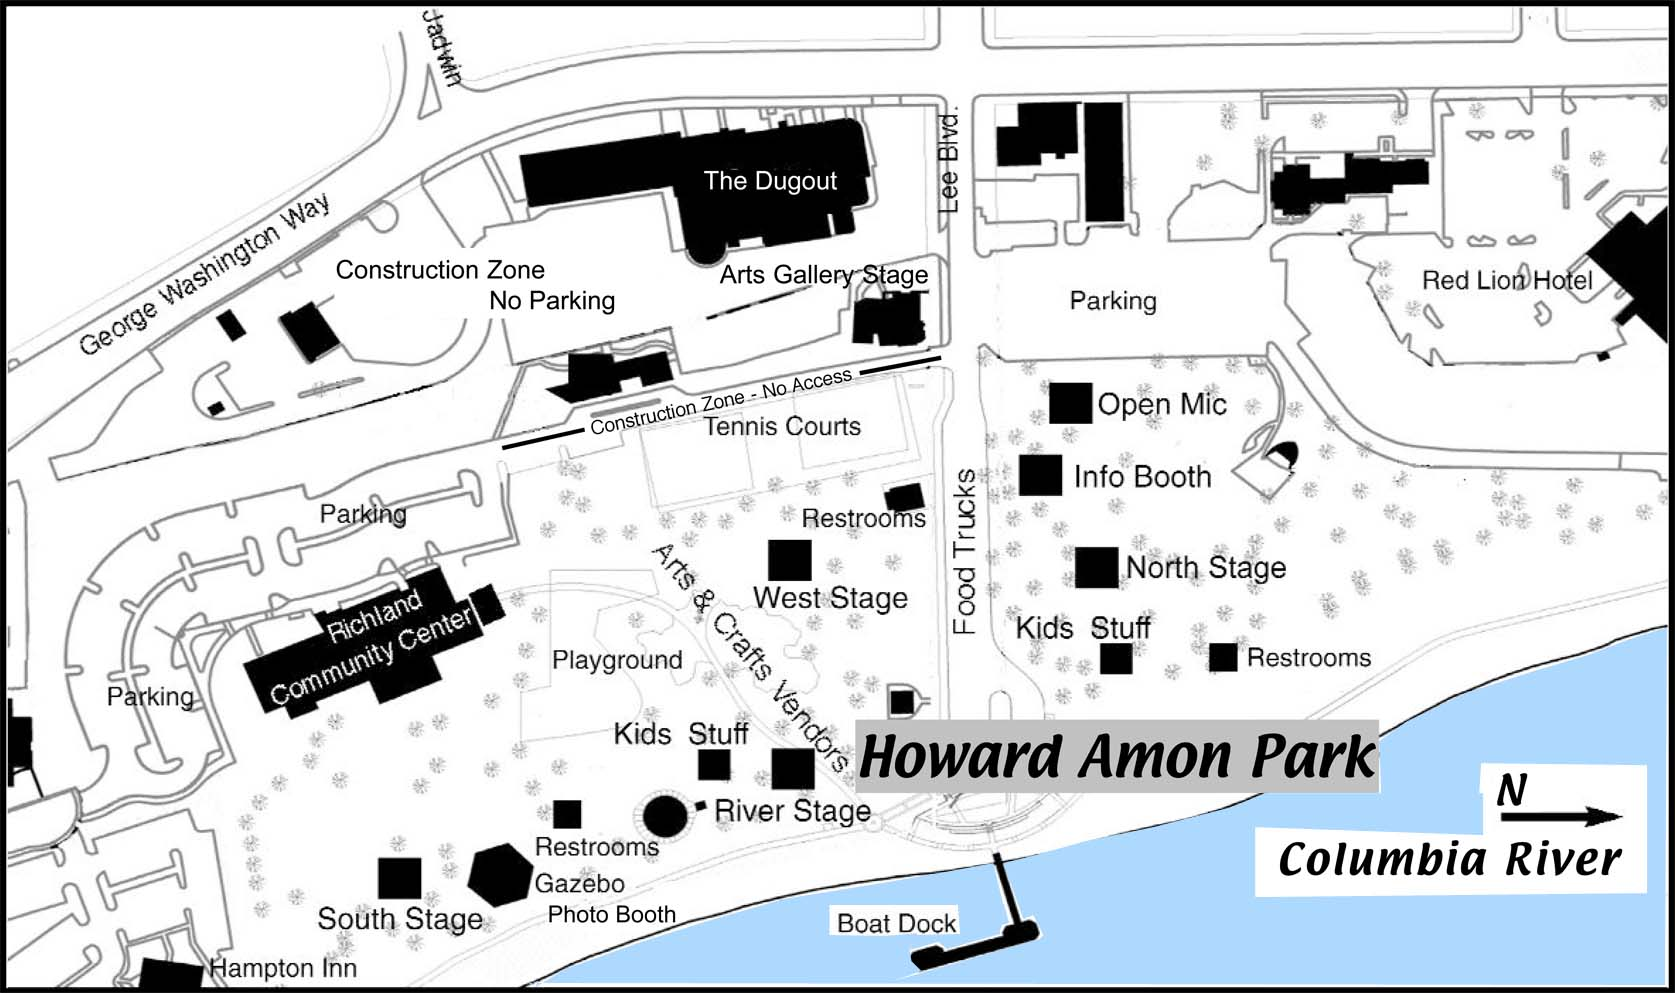 Howard Amon Park Map